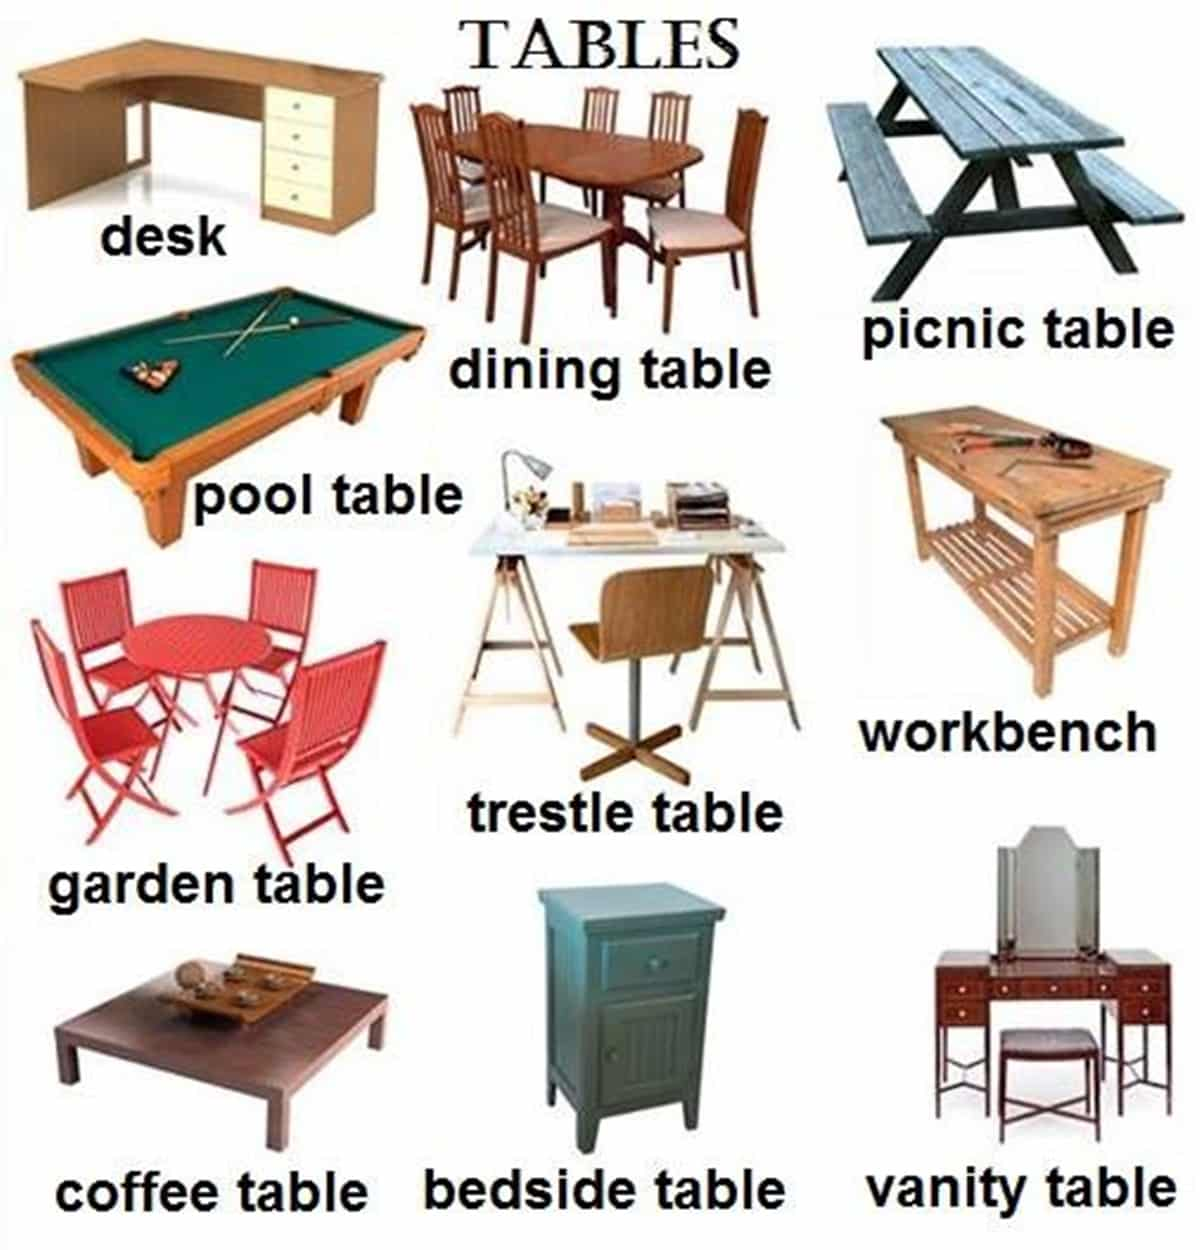 Furniture Vocabulary: 250+ Items Illustrated 9